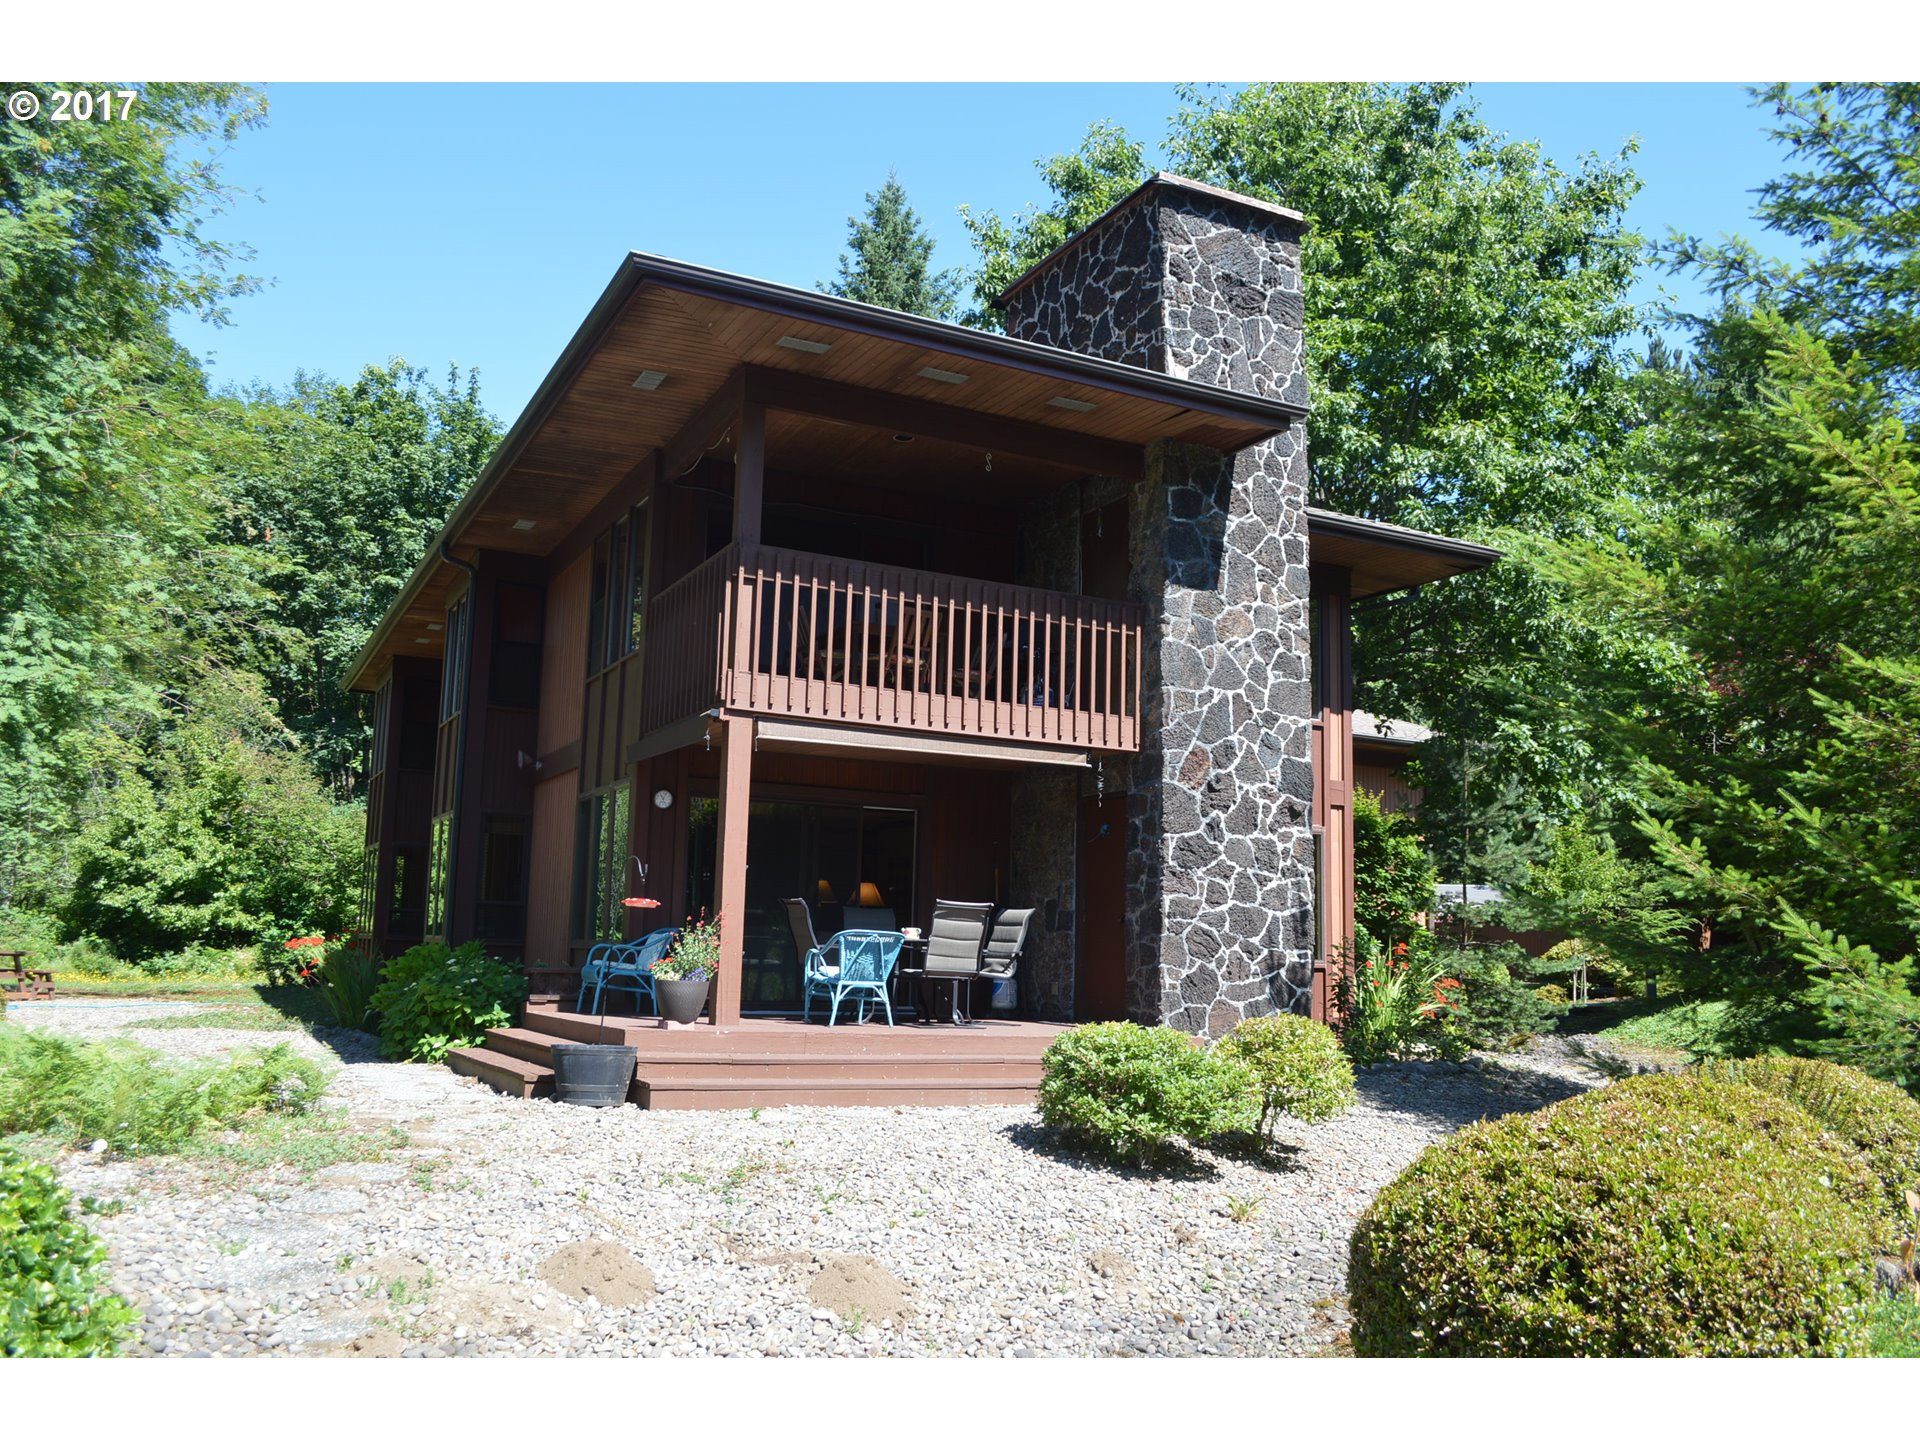 26231 E WELCHES RD 13, Welches, OR 97067